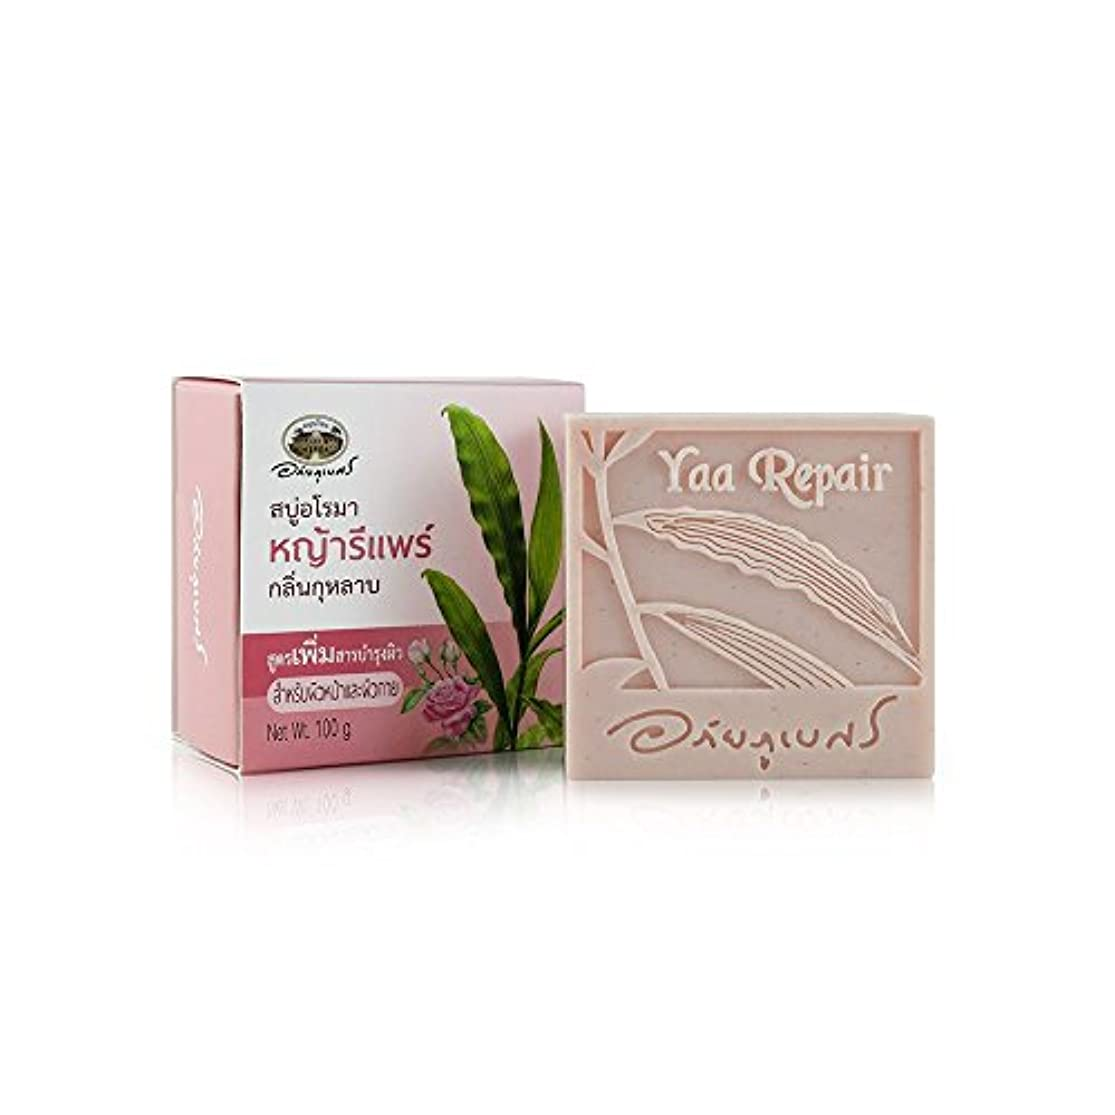 優しさデータムあえぎAbhaibhubejhr Thai Aromatherapy With Rose Skin Care Formula Herbal Body Face Cleaning Soap 100g. Abhaibhubejhr...